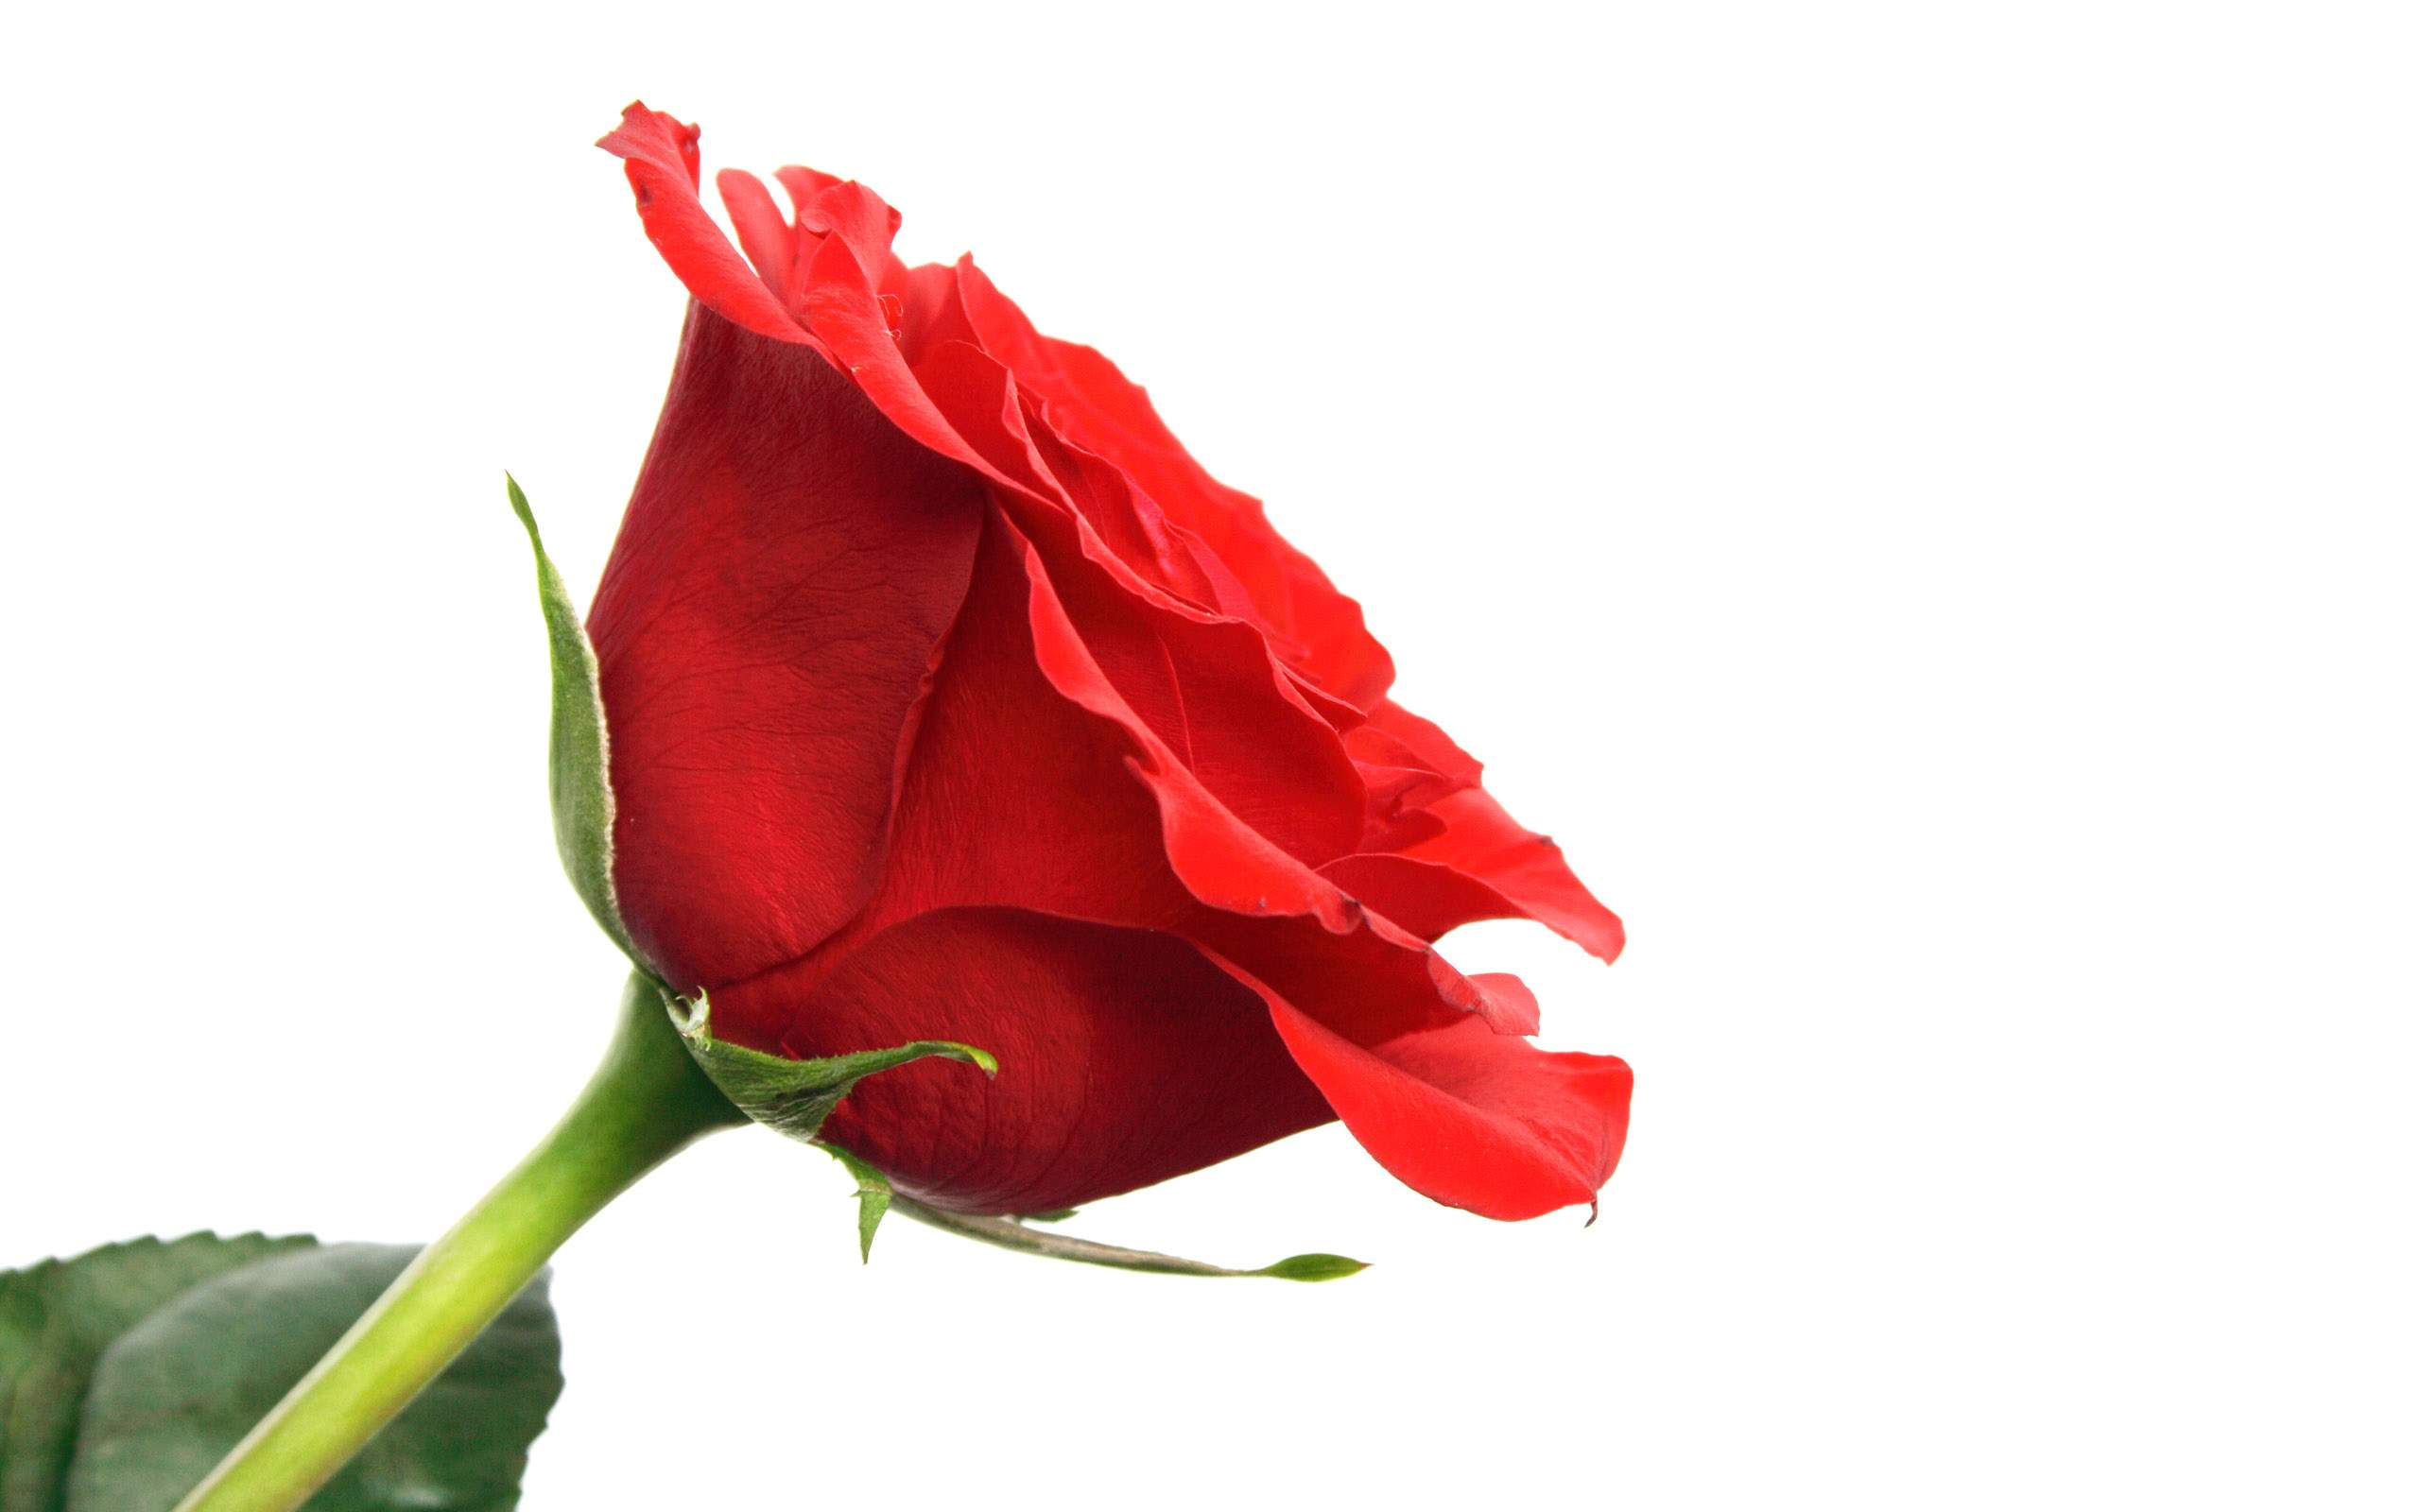 Red Rose Flower Images 13 HD Wallpapers